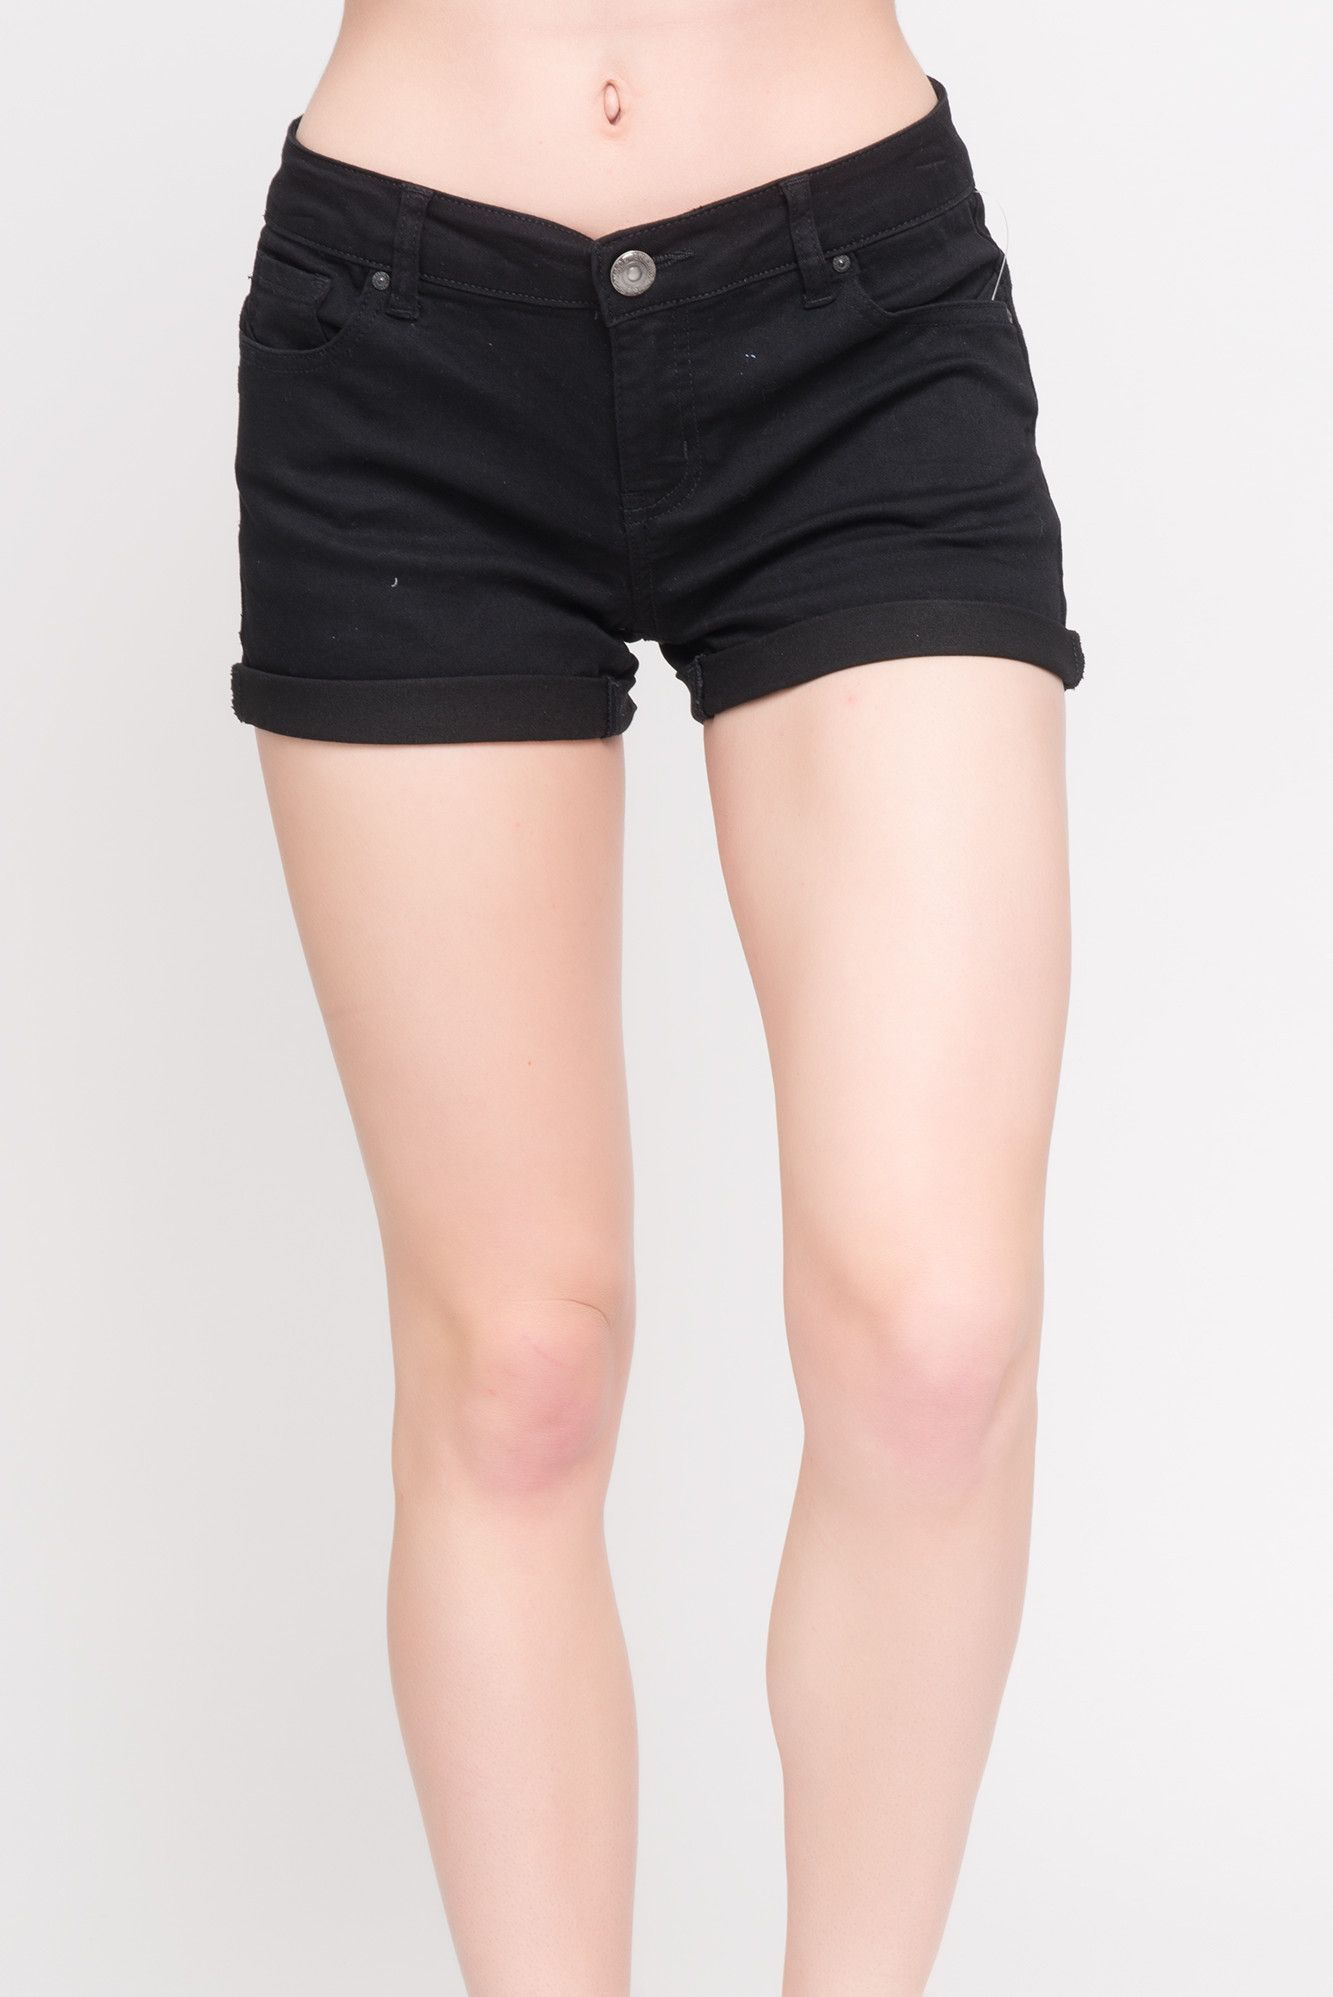 WAX JEANS ROLLED CUFF SHORTS